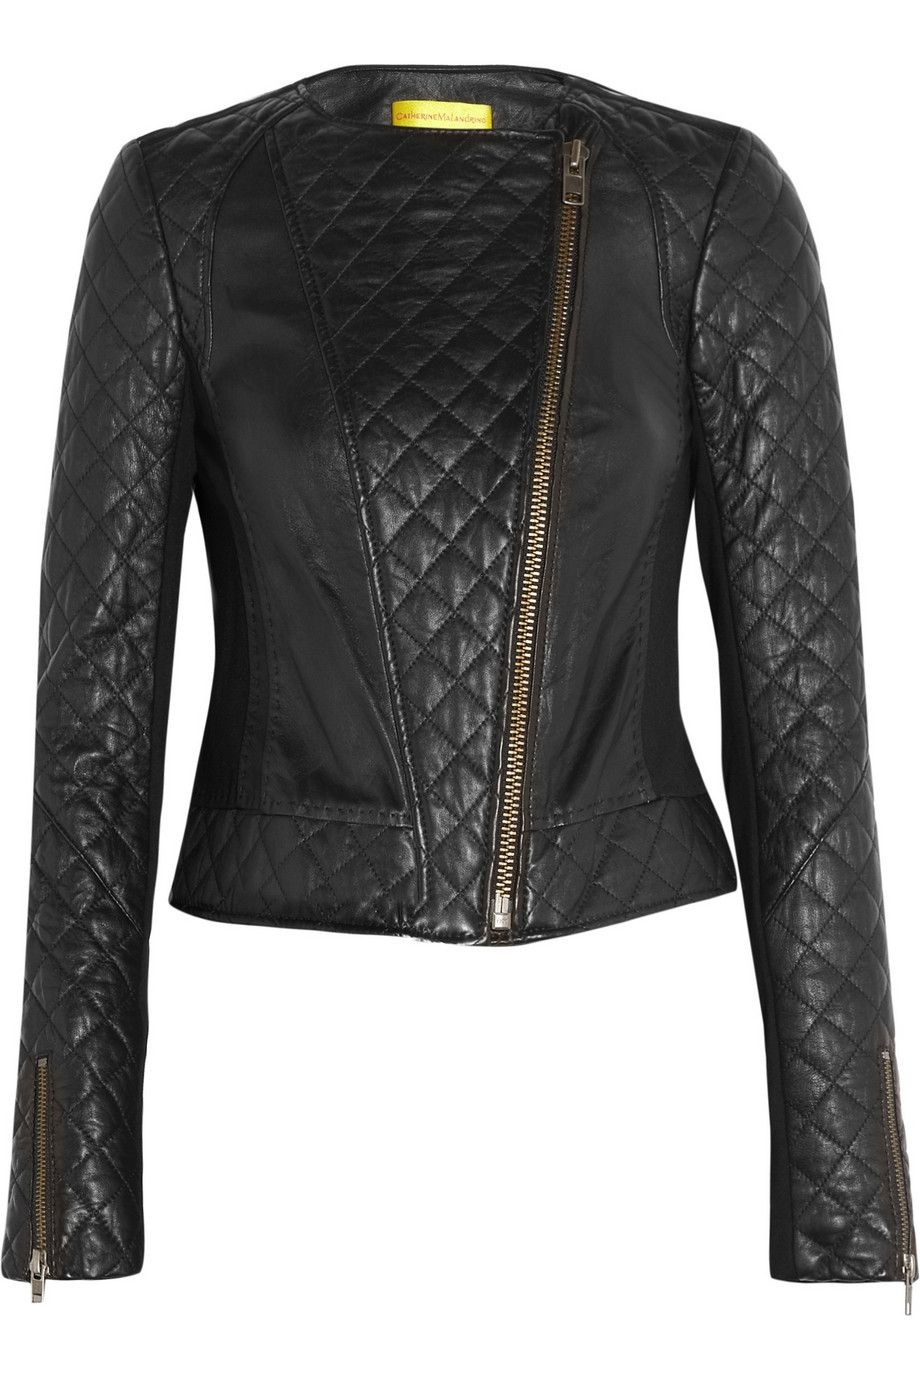 Quilted leather and stretch-ponte jacket-  3   My style - haves ... 746503d1640